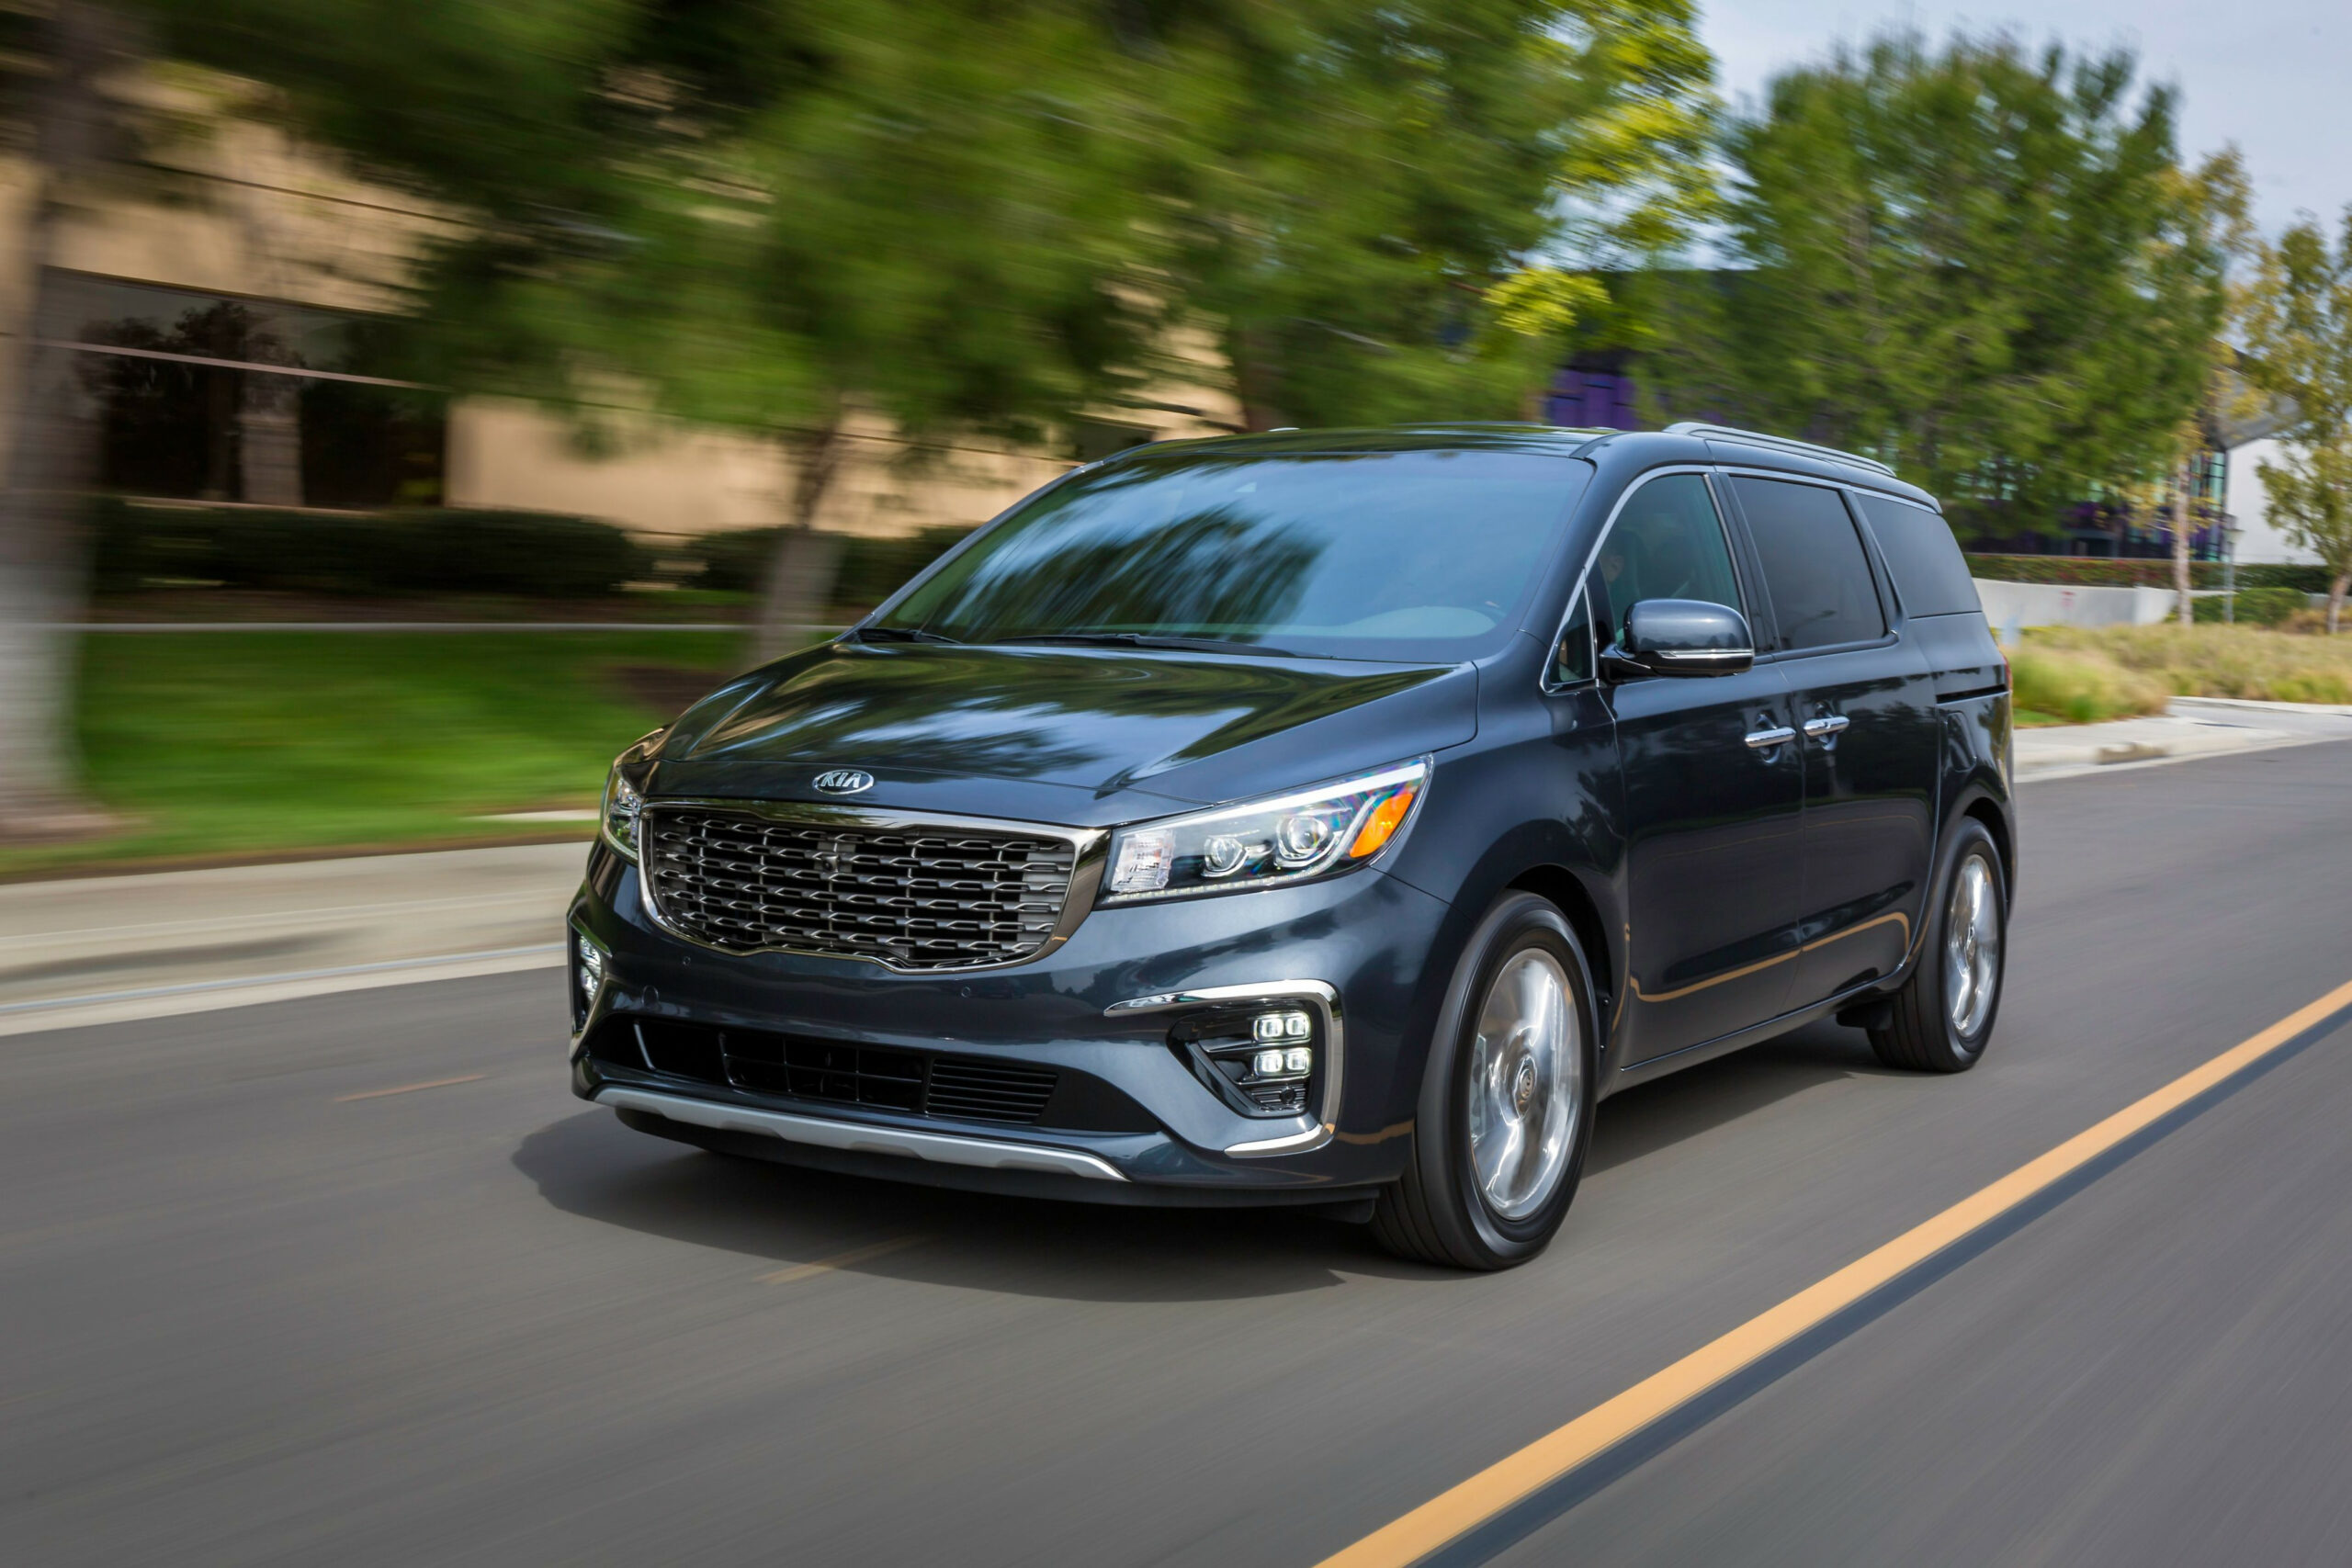 10 Kia Sedona Review, Pricing, and Specs